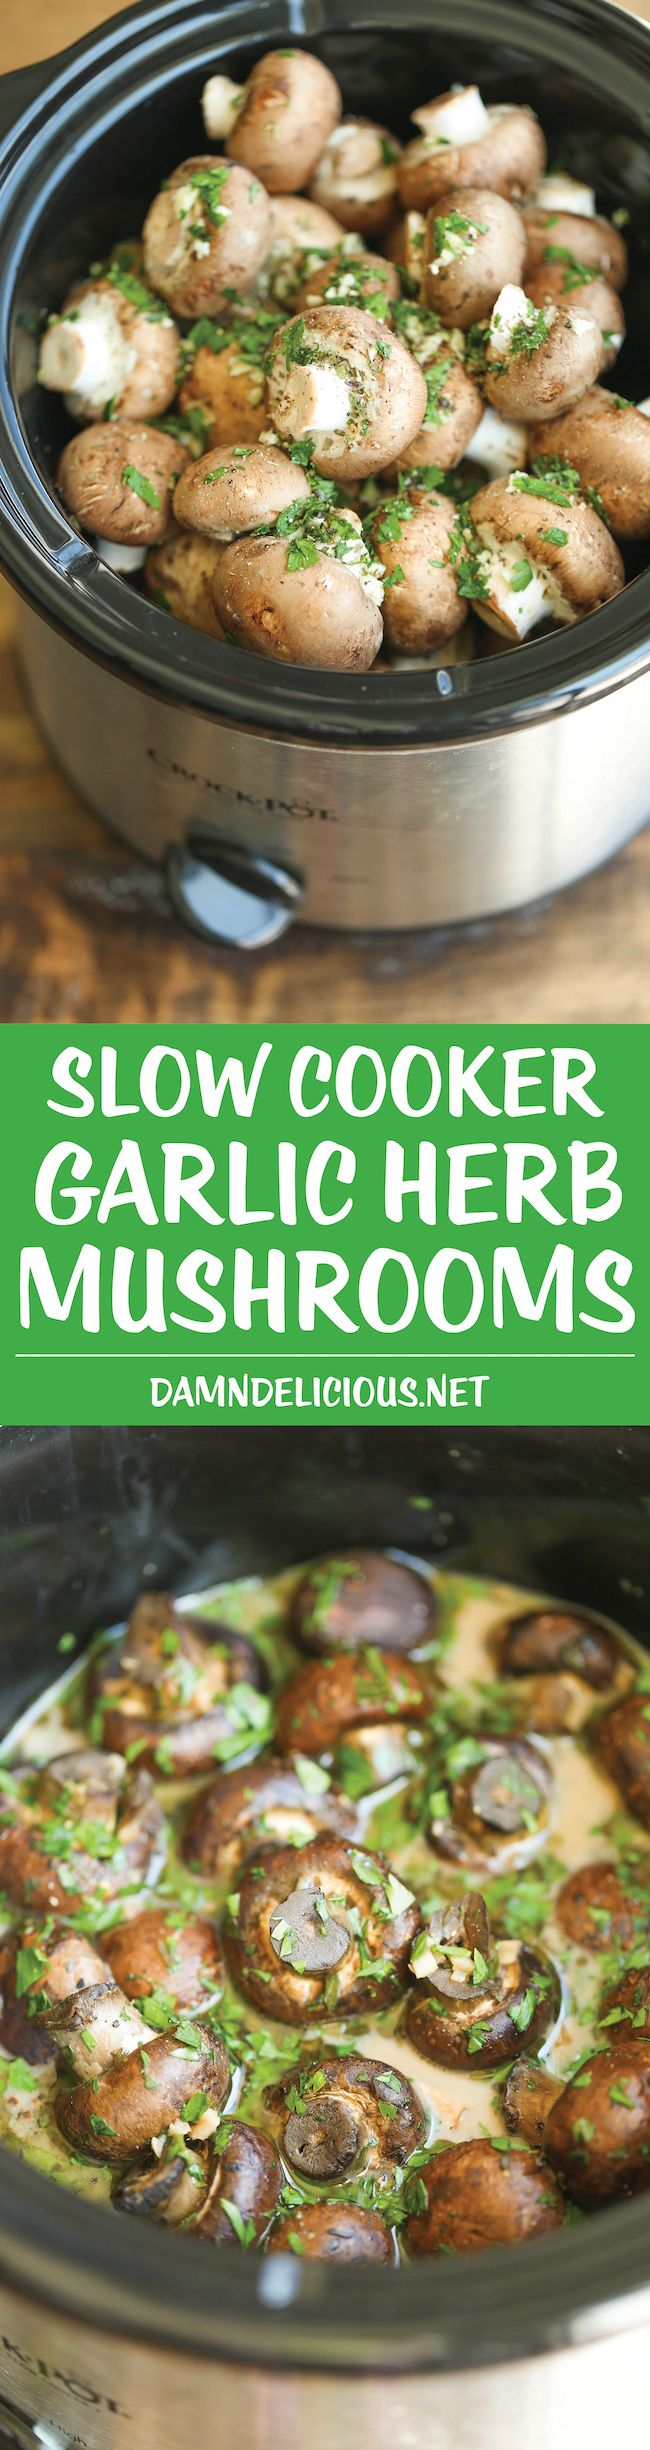 Slow Cooker Garlic Herb Mushrooms – The best and EASIEST way to make mushrooms – i